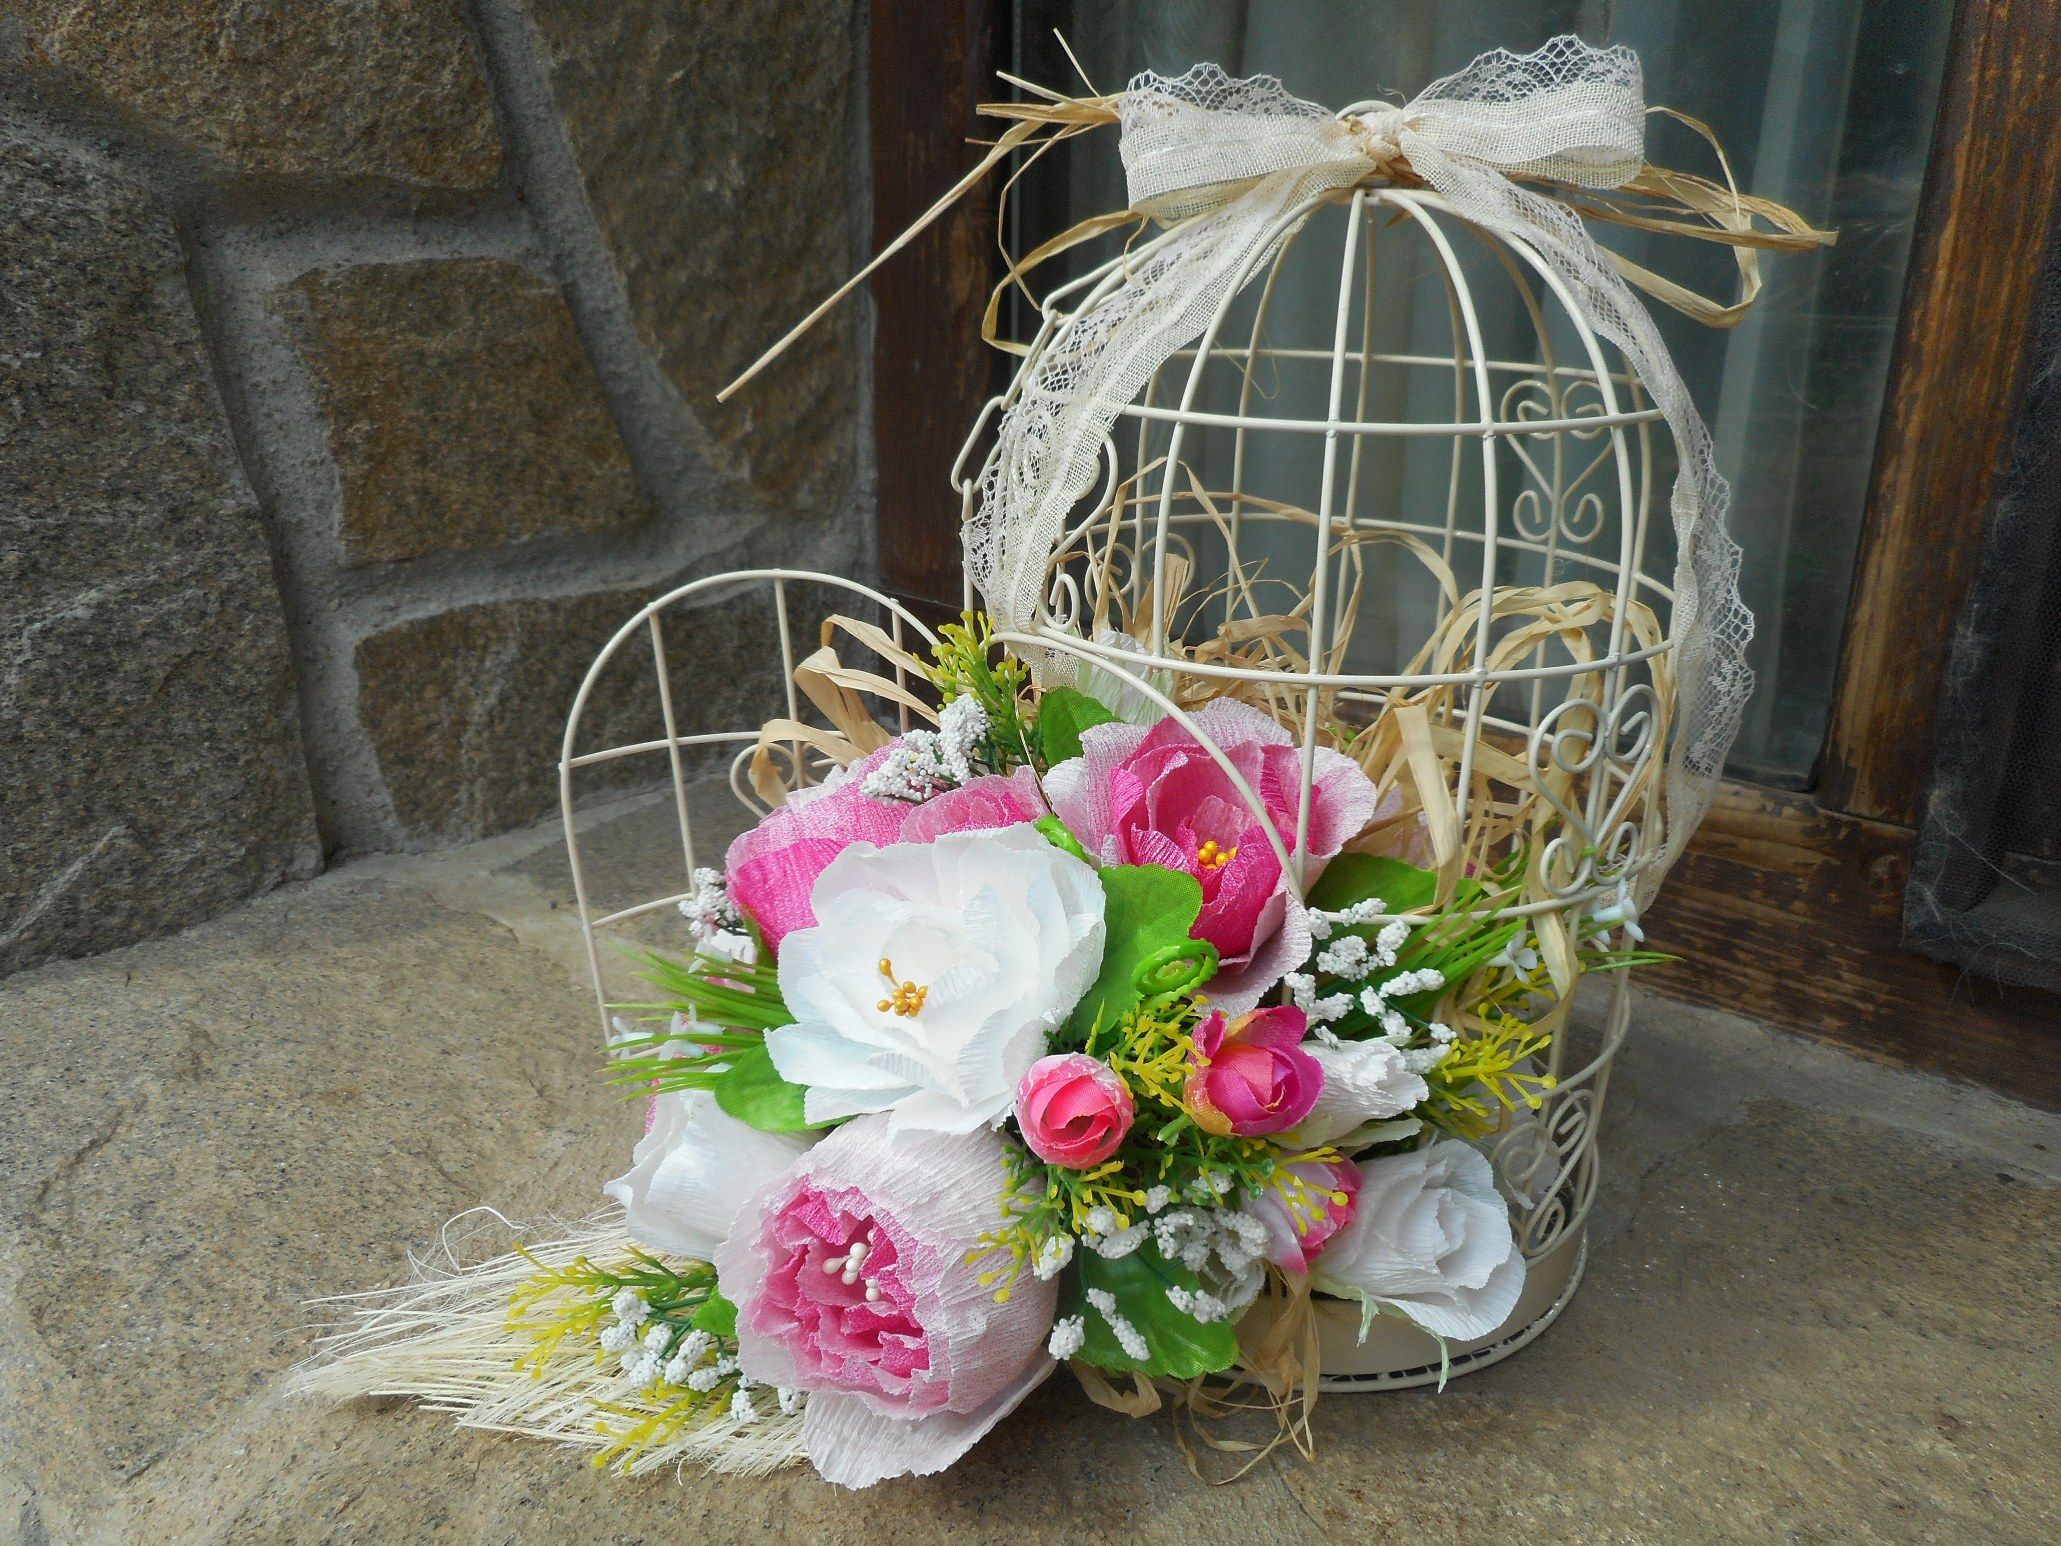 Handmade wedding decorations paper  A handmade cage for wedding with crepe paper flowers Home